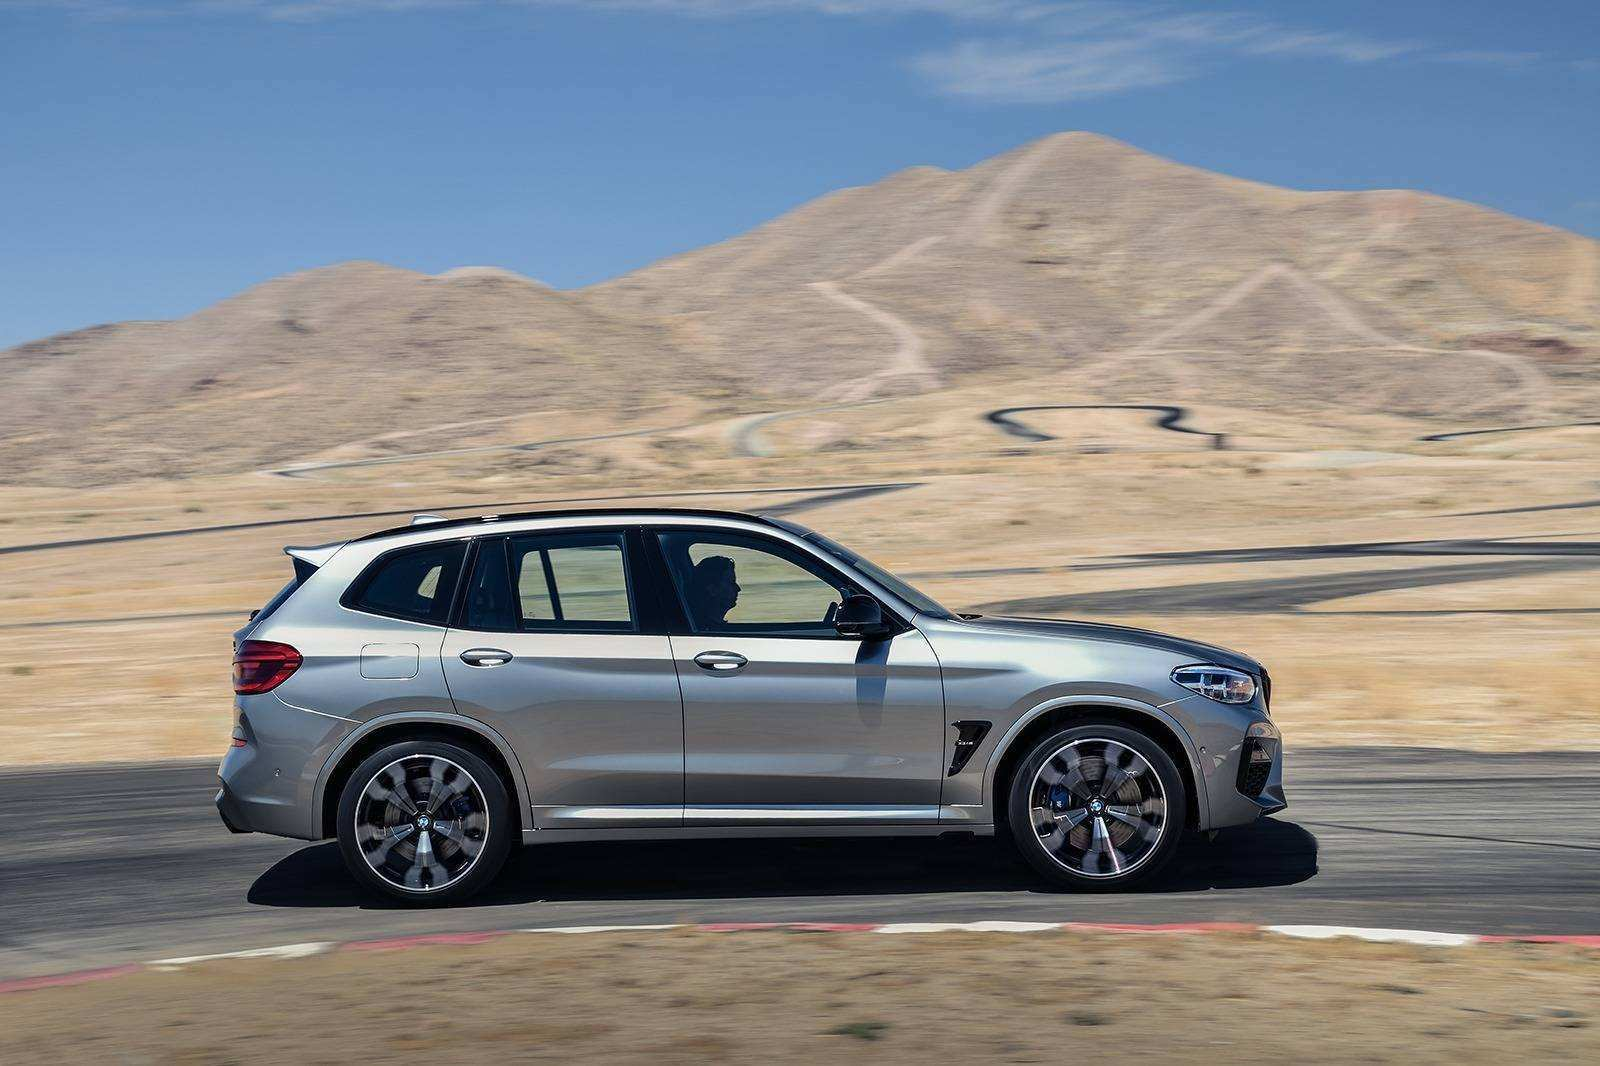 77 All New Bmw X3 2020 Release Date Ratings